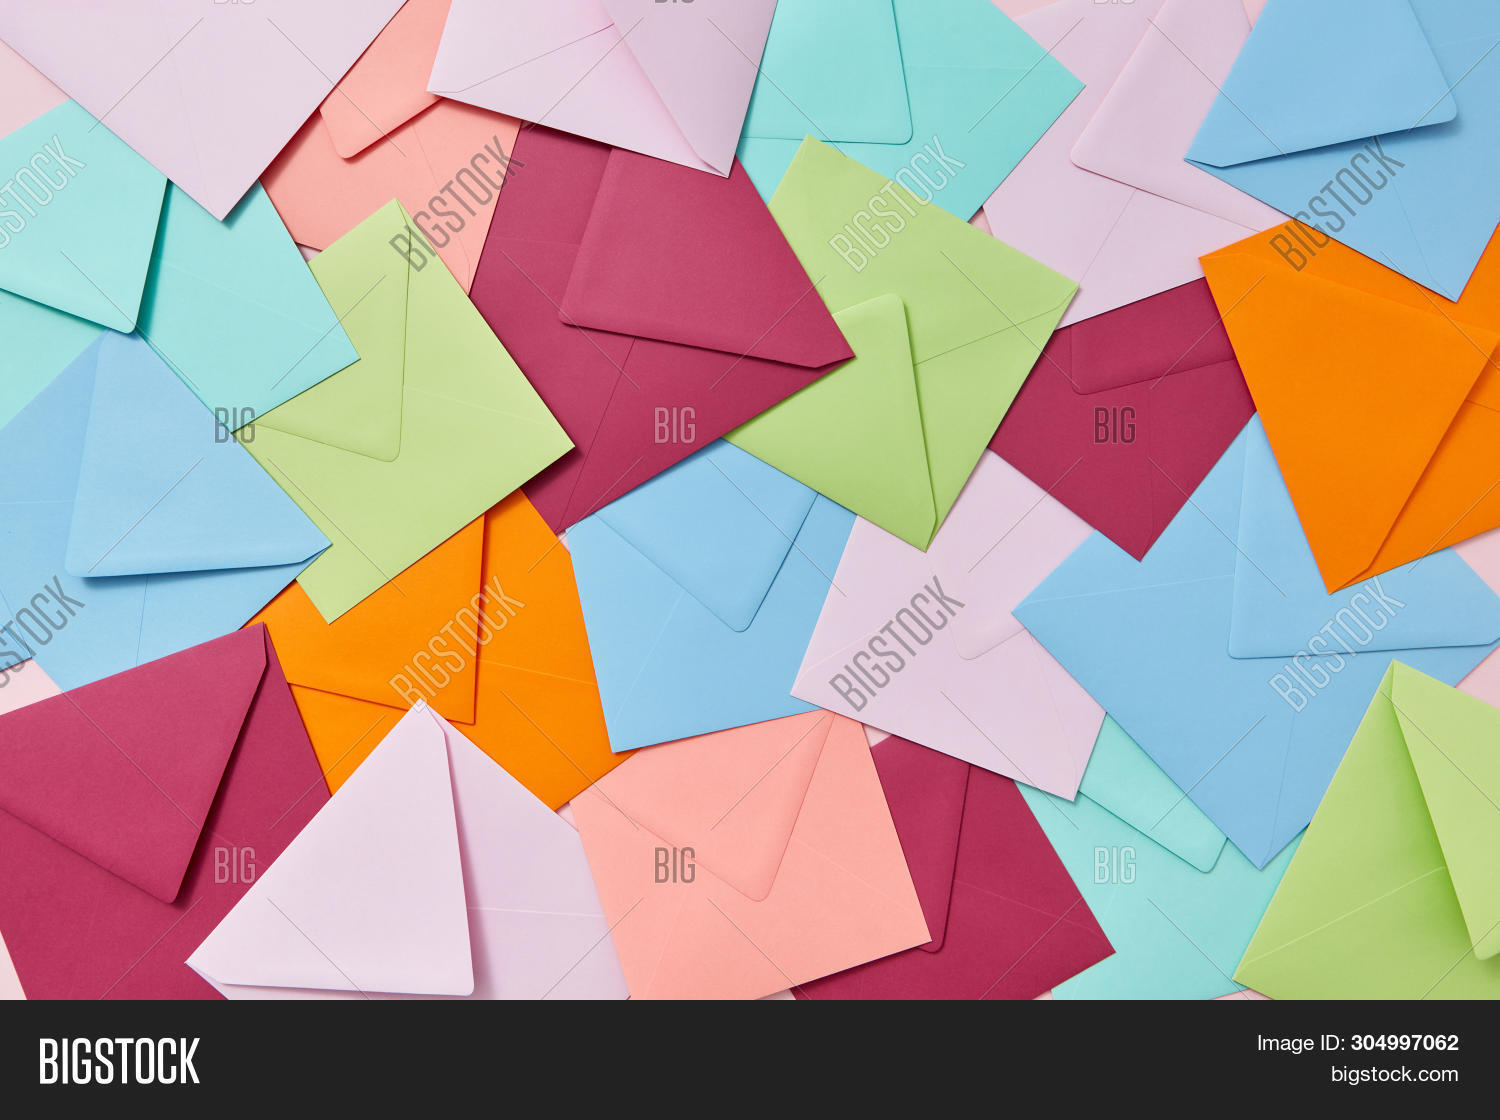 Creative background from handcraft colored blank envelopes and letters.